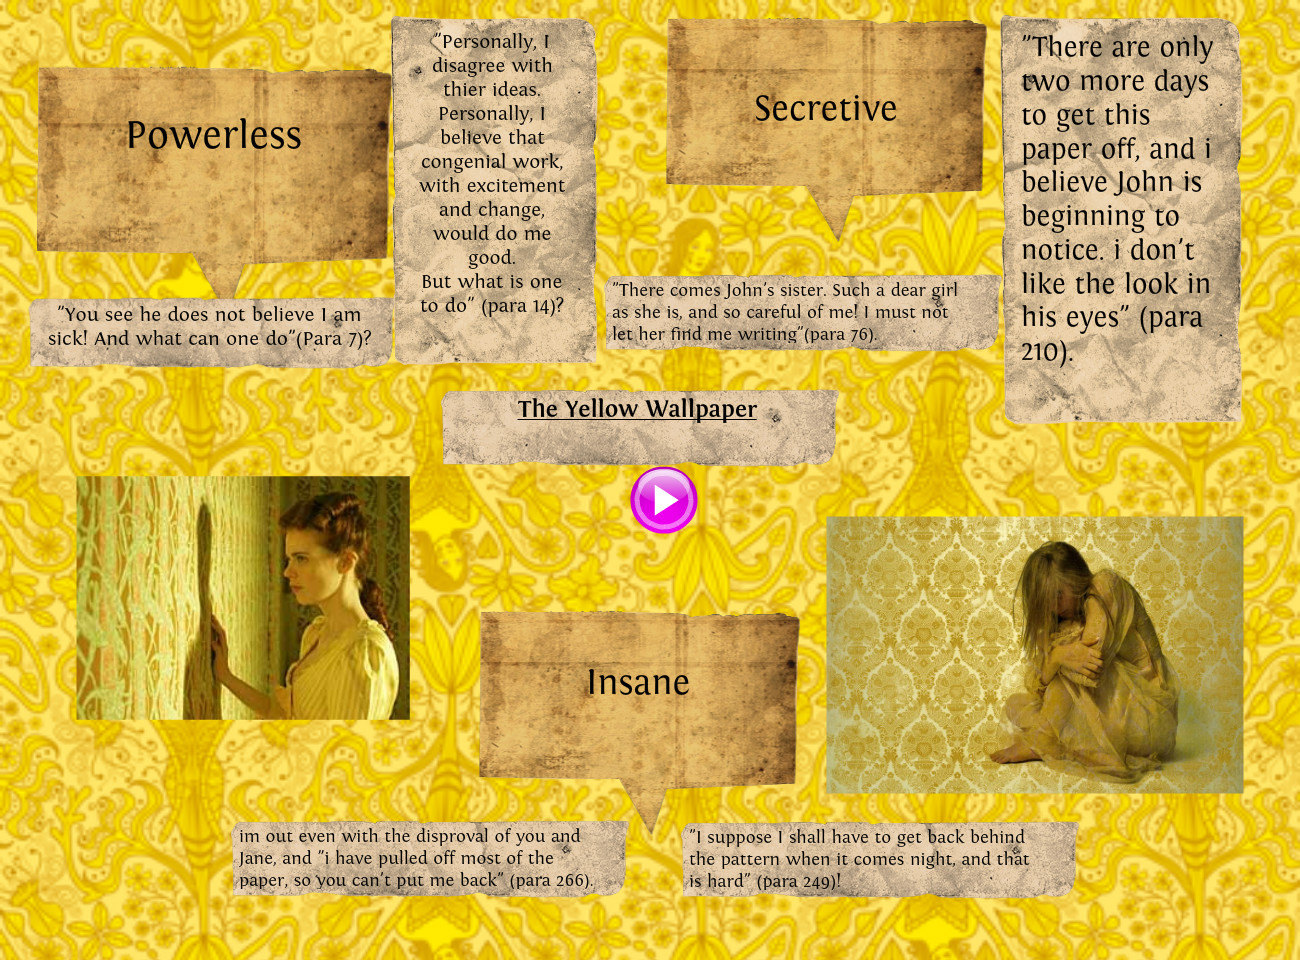 The yellow wallpaper thesis